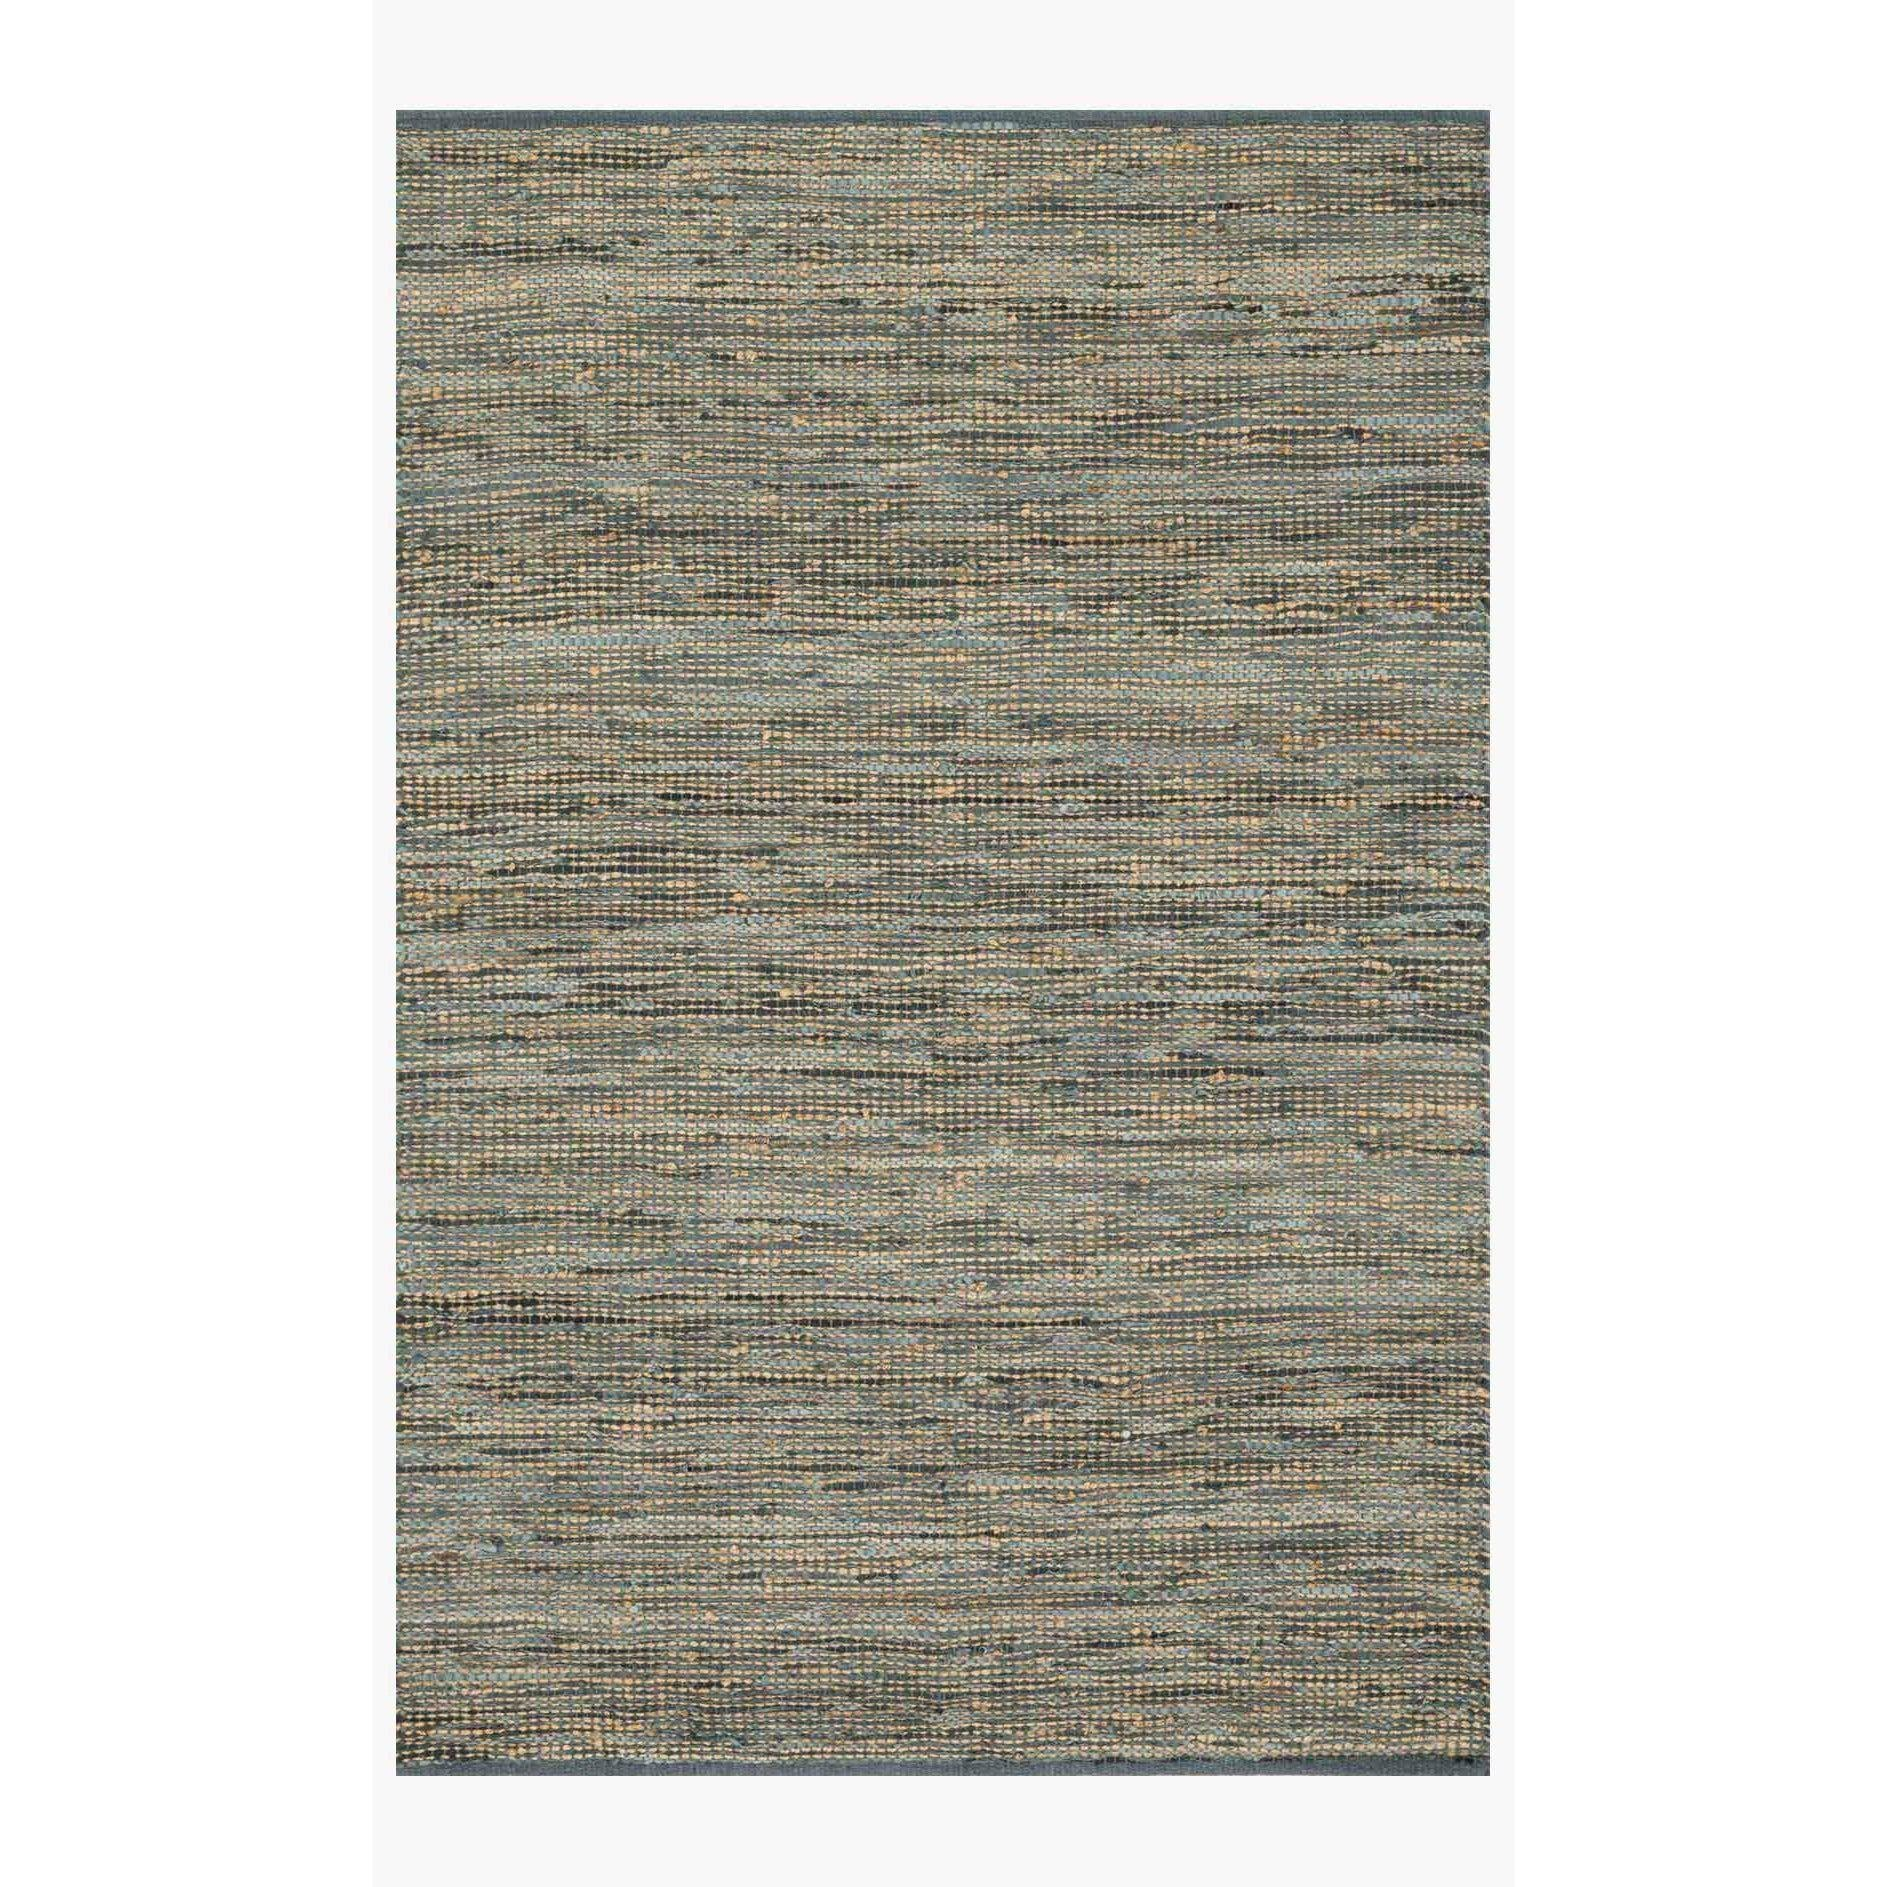 Edge Rug by Loloi Rugs - ED-01 - Grey